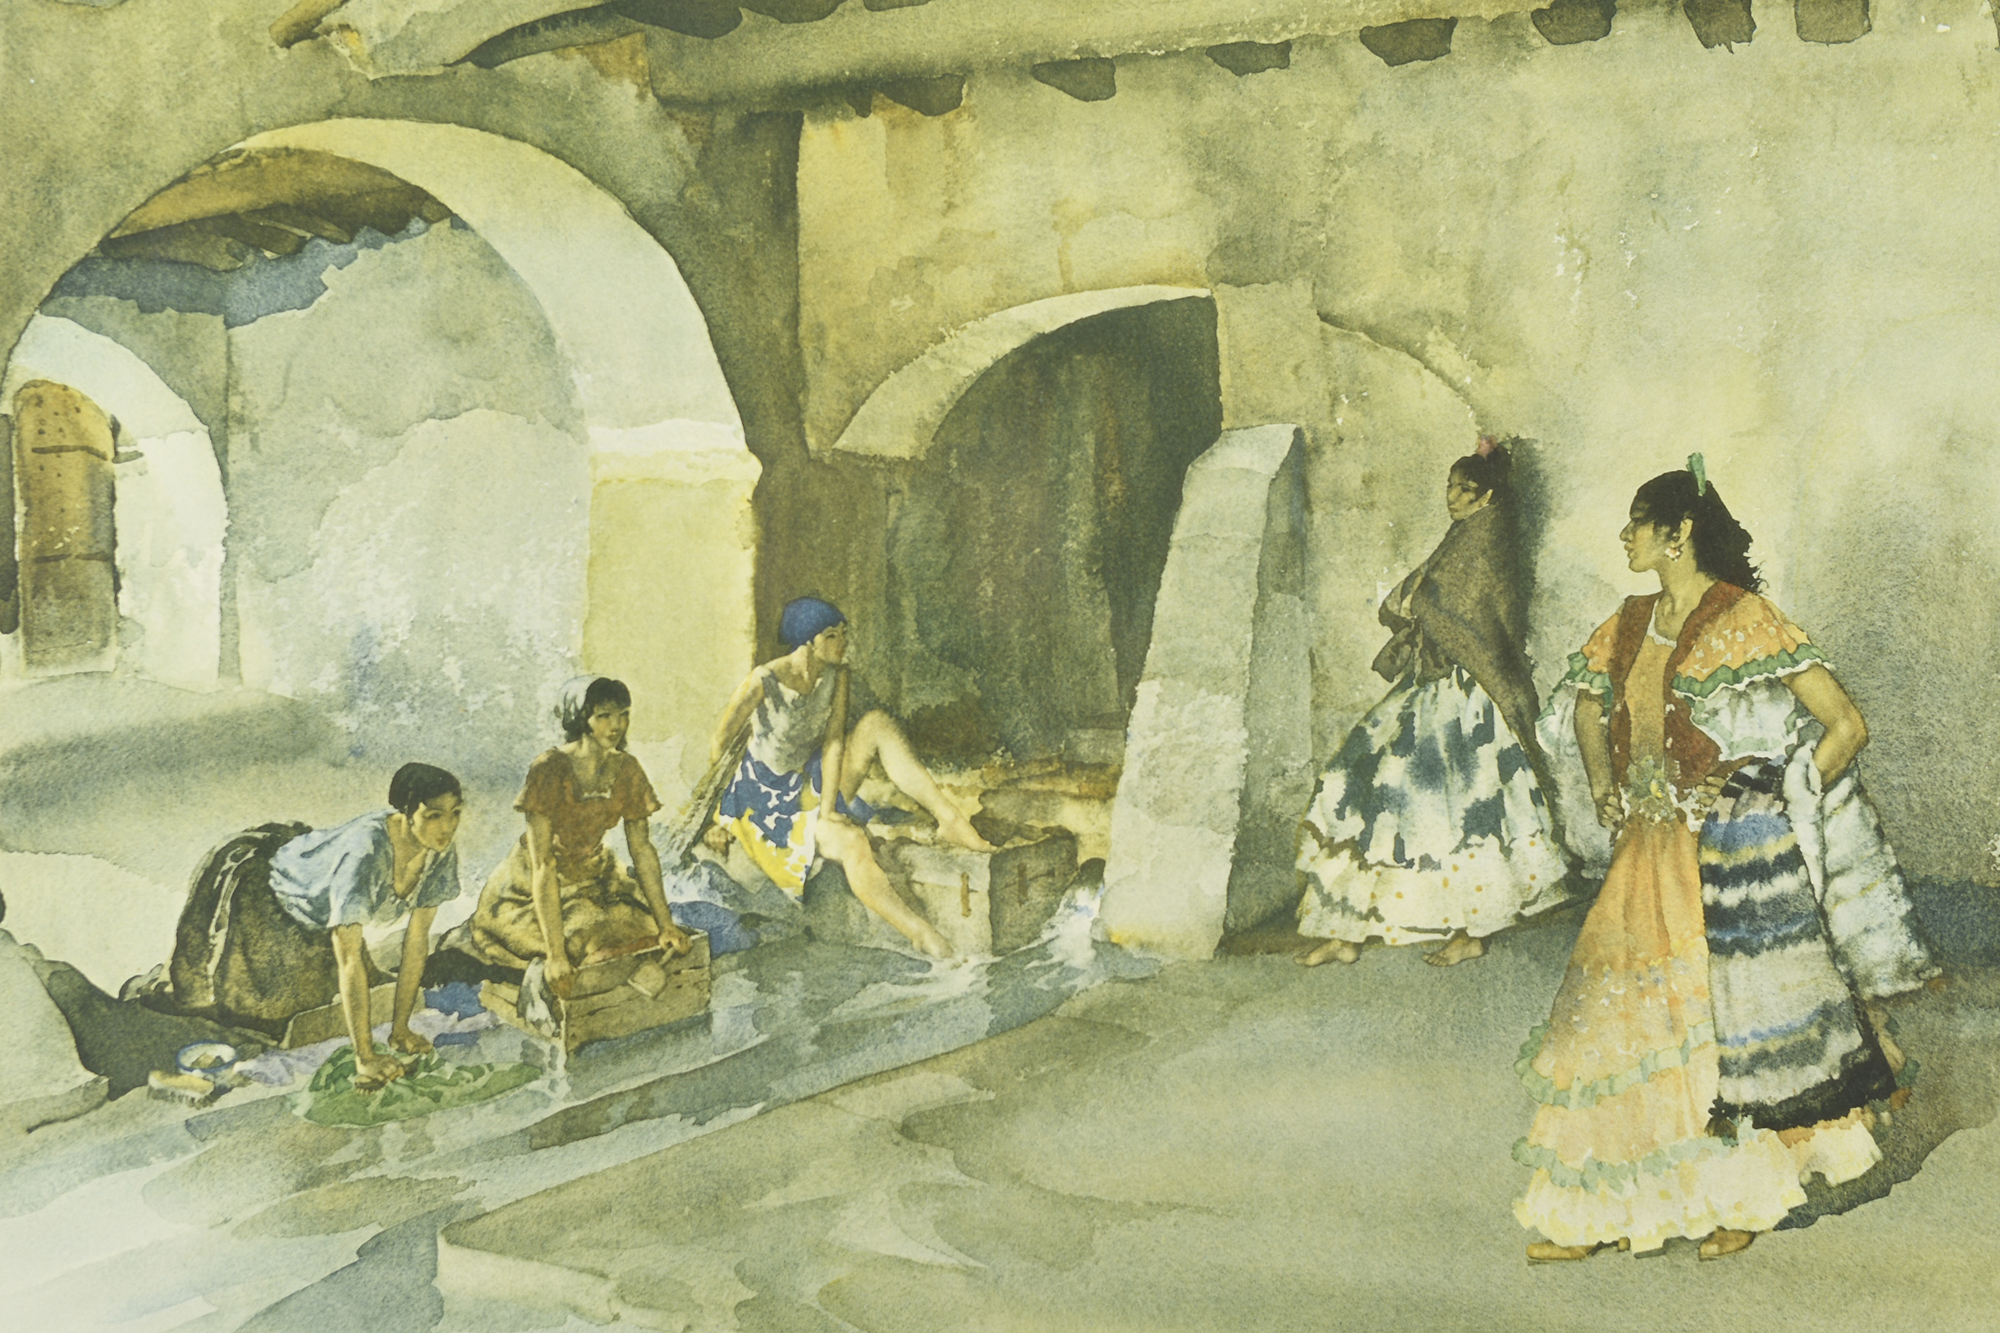 """Signed Limited Edition by Sir William Russell Flint """"Unwelcome Observers"""" - Image 8 of 8"""